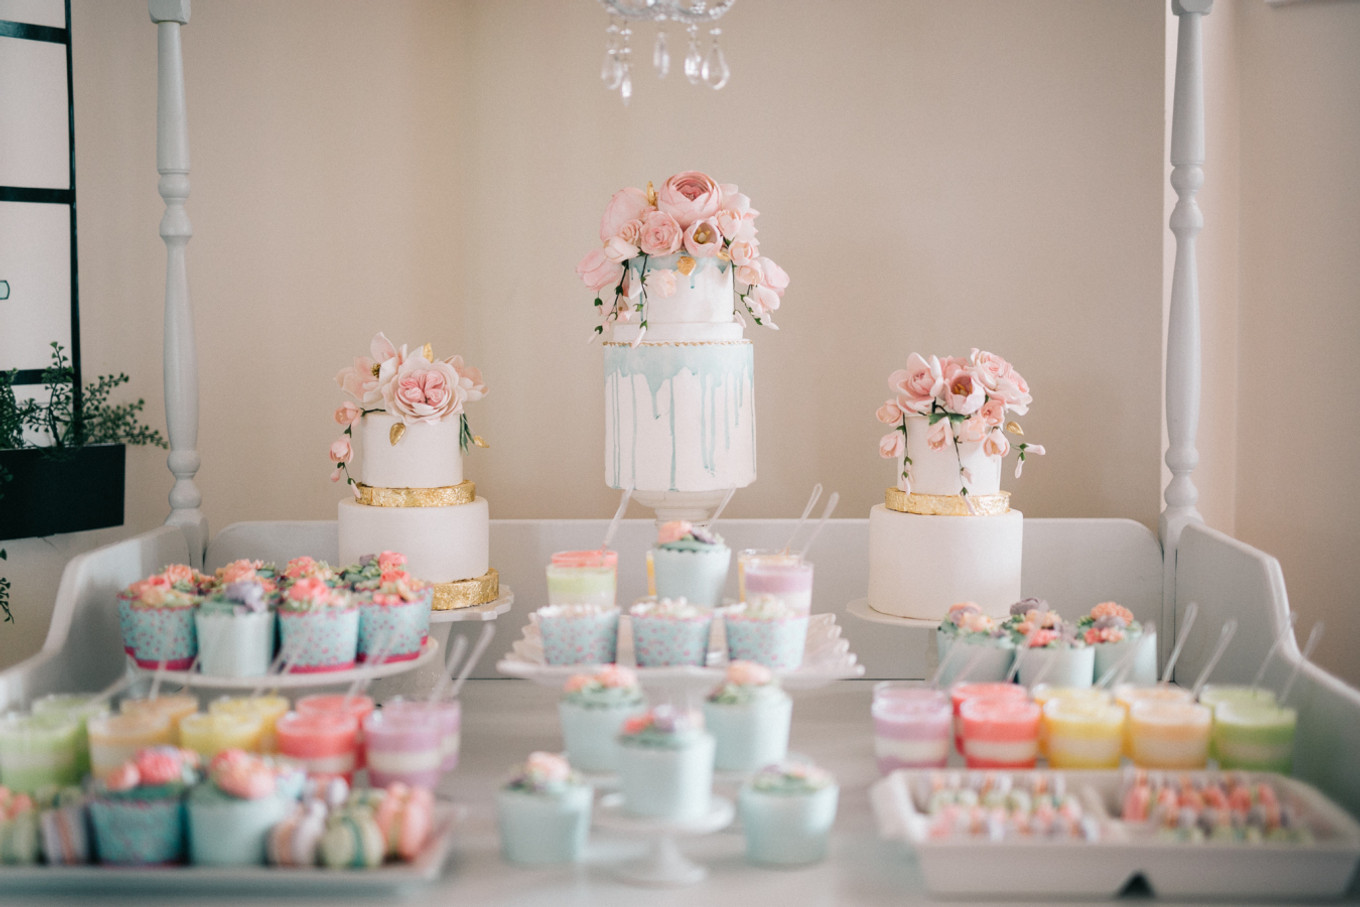 15 Delightful Wedding Dessert Table Ideas Bridestory Blog